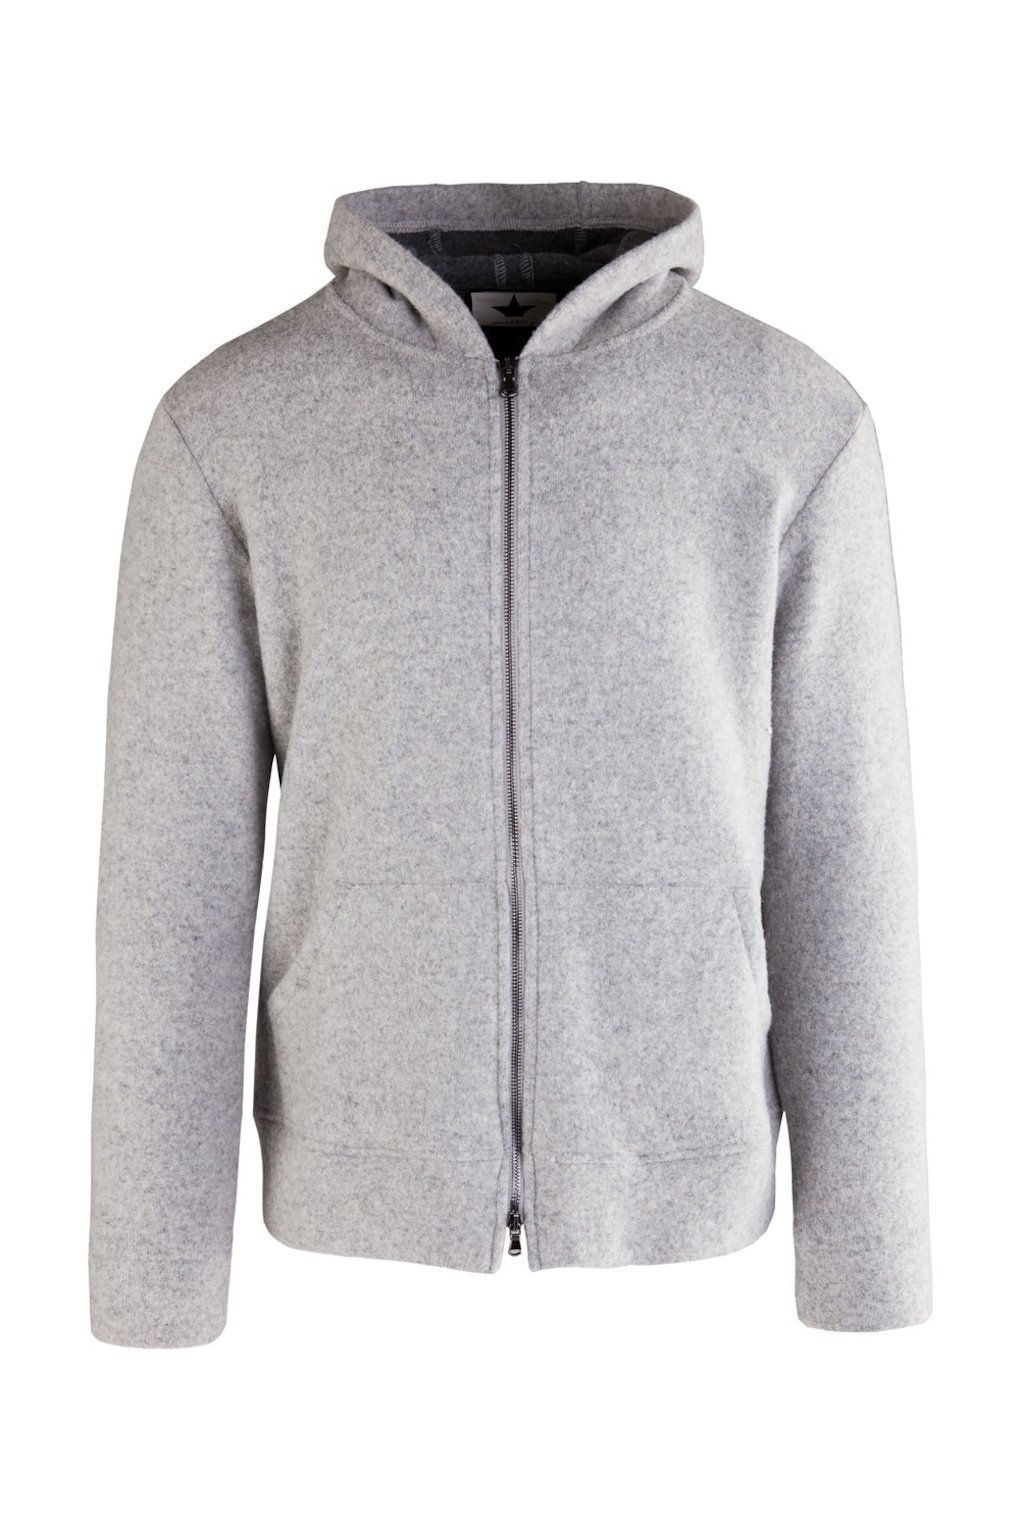 Sweatshirt with Hood in Wool Blend